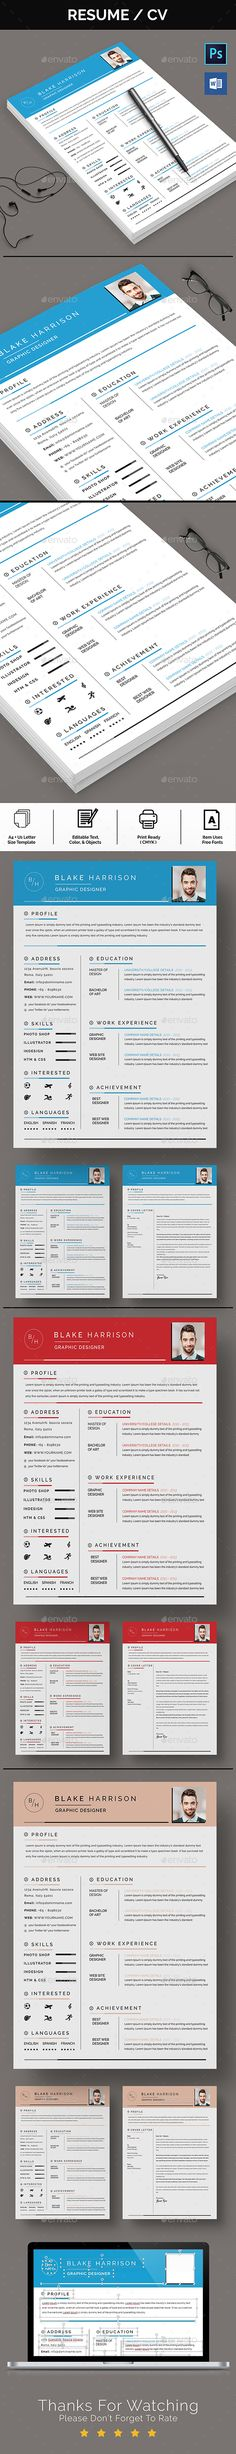 Clean ResumeCV Resume cv Template